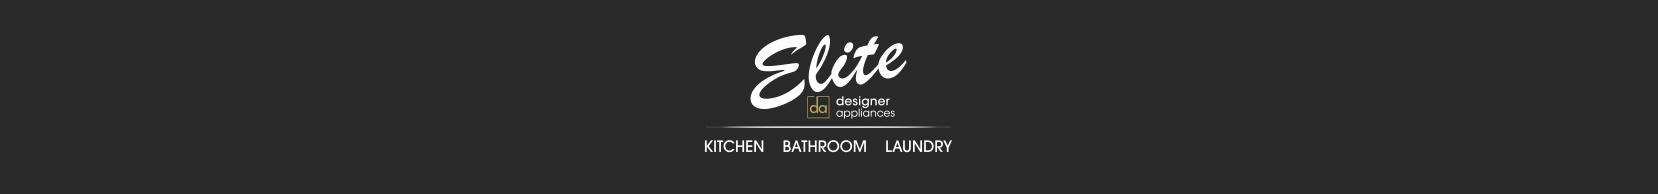 Elite Appliances